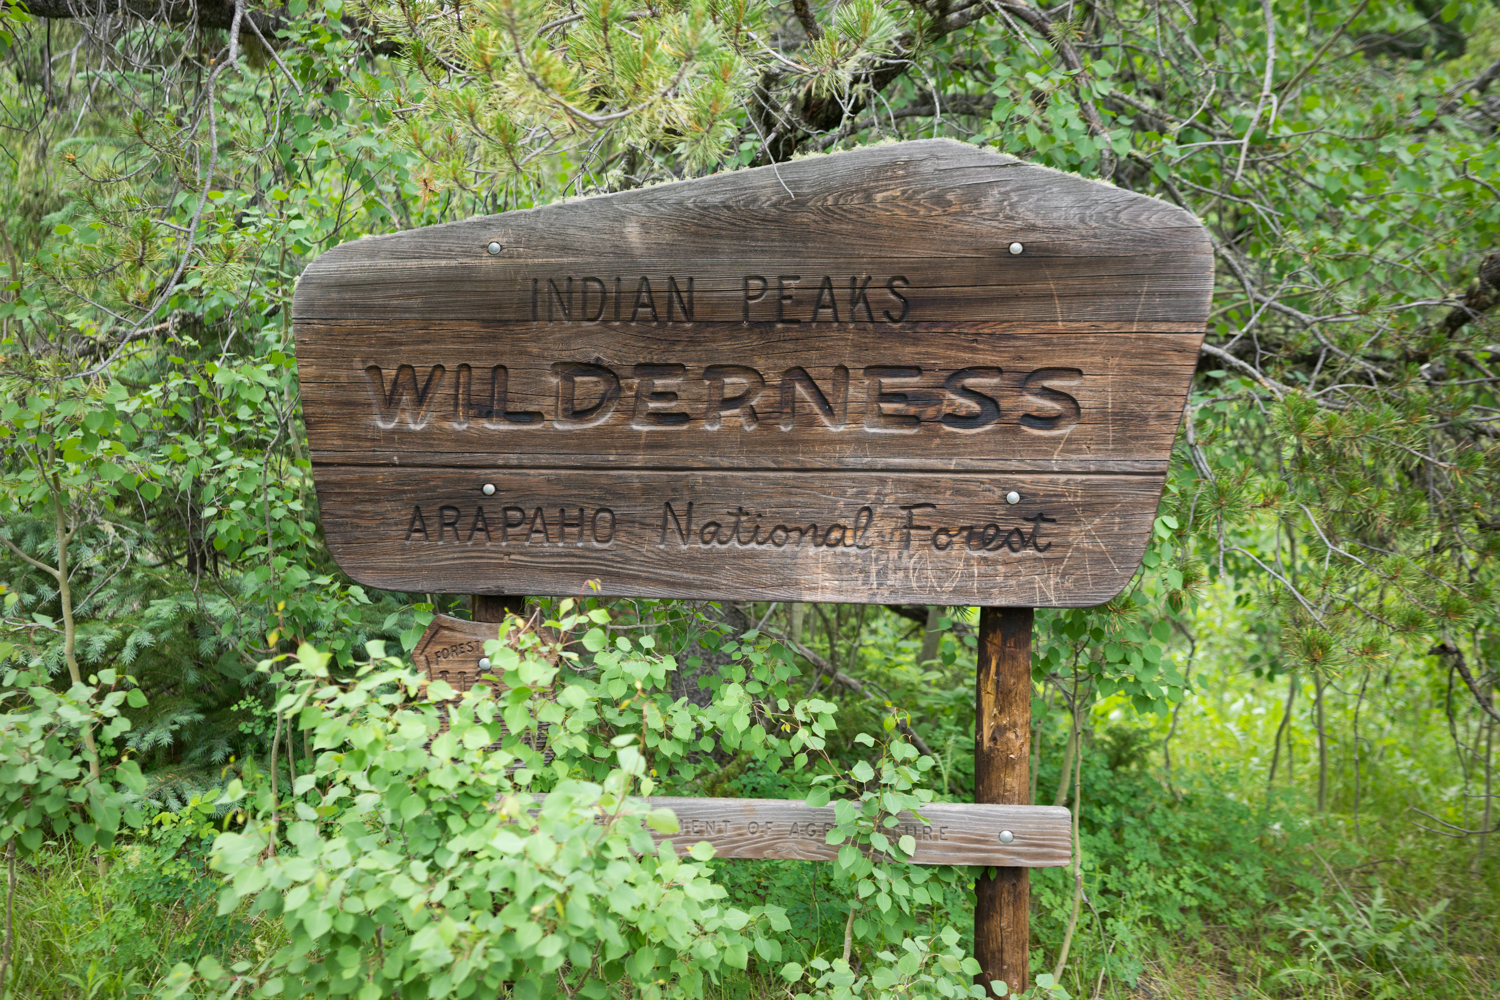 Thank you Indian Peaks Wilderness. You've left quite the impression.